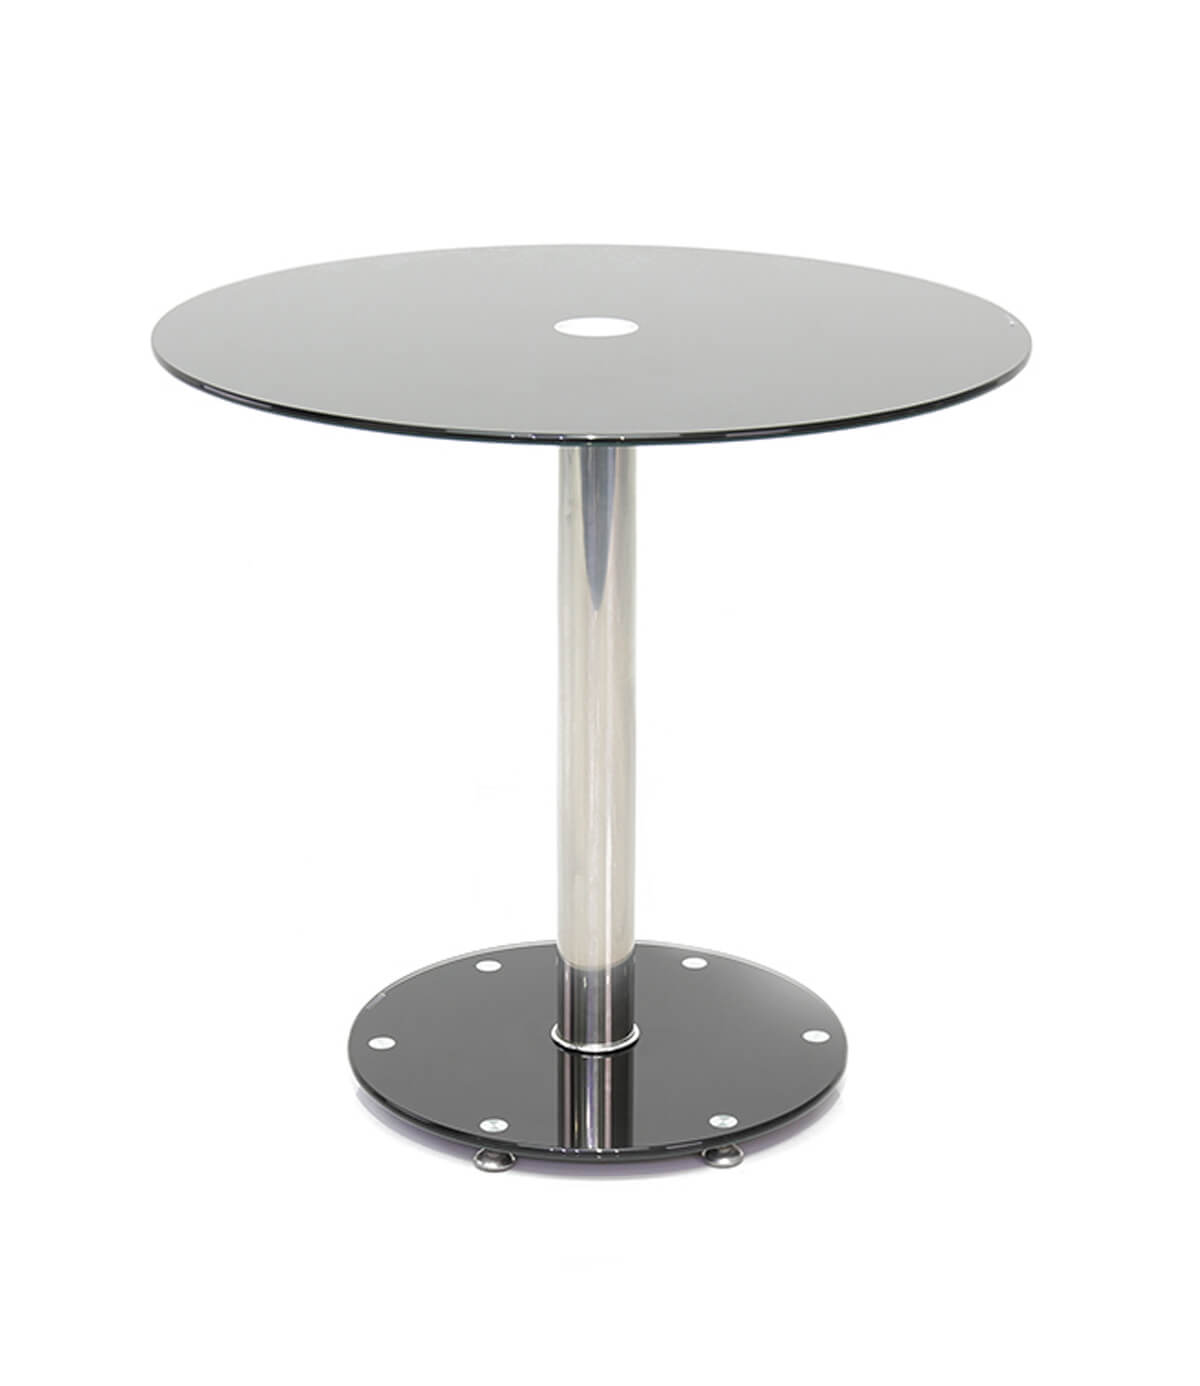 parma black round glass small dining table 80 cm manchester furniture supplies. Black Bedroom Furniture Sets. Home Design Ideas